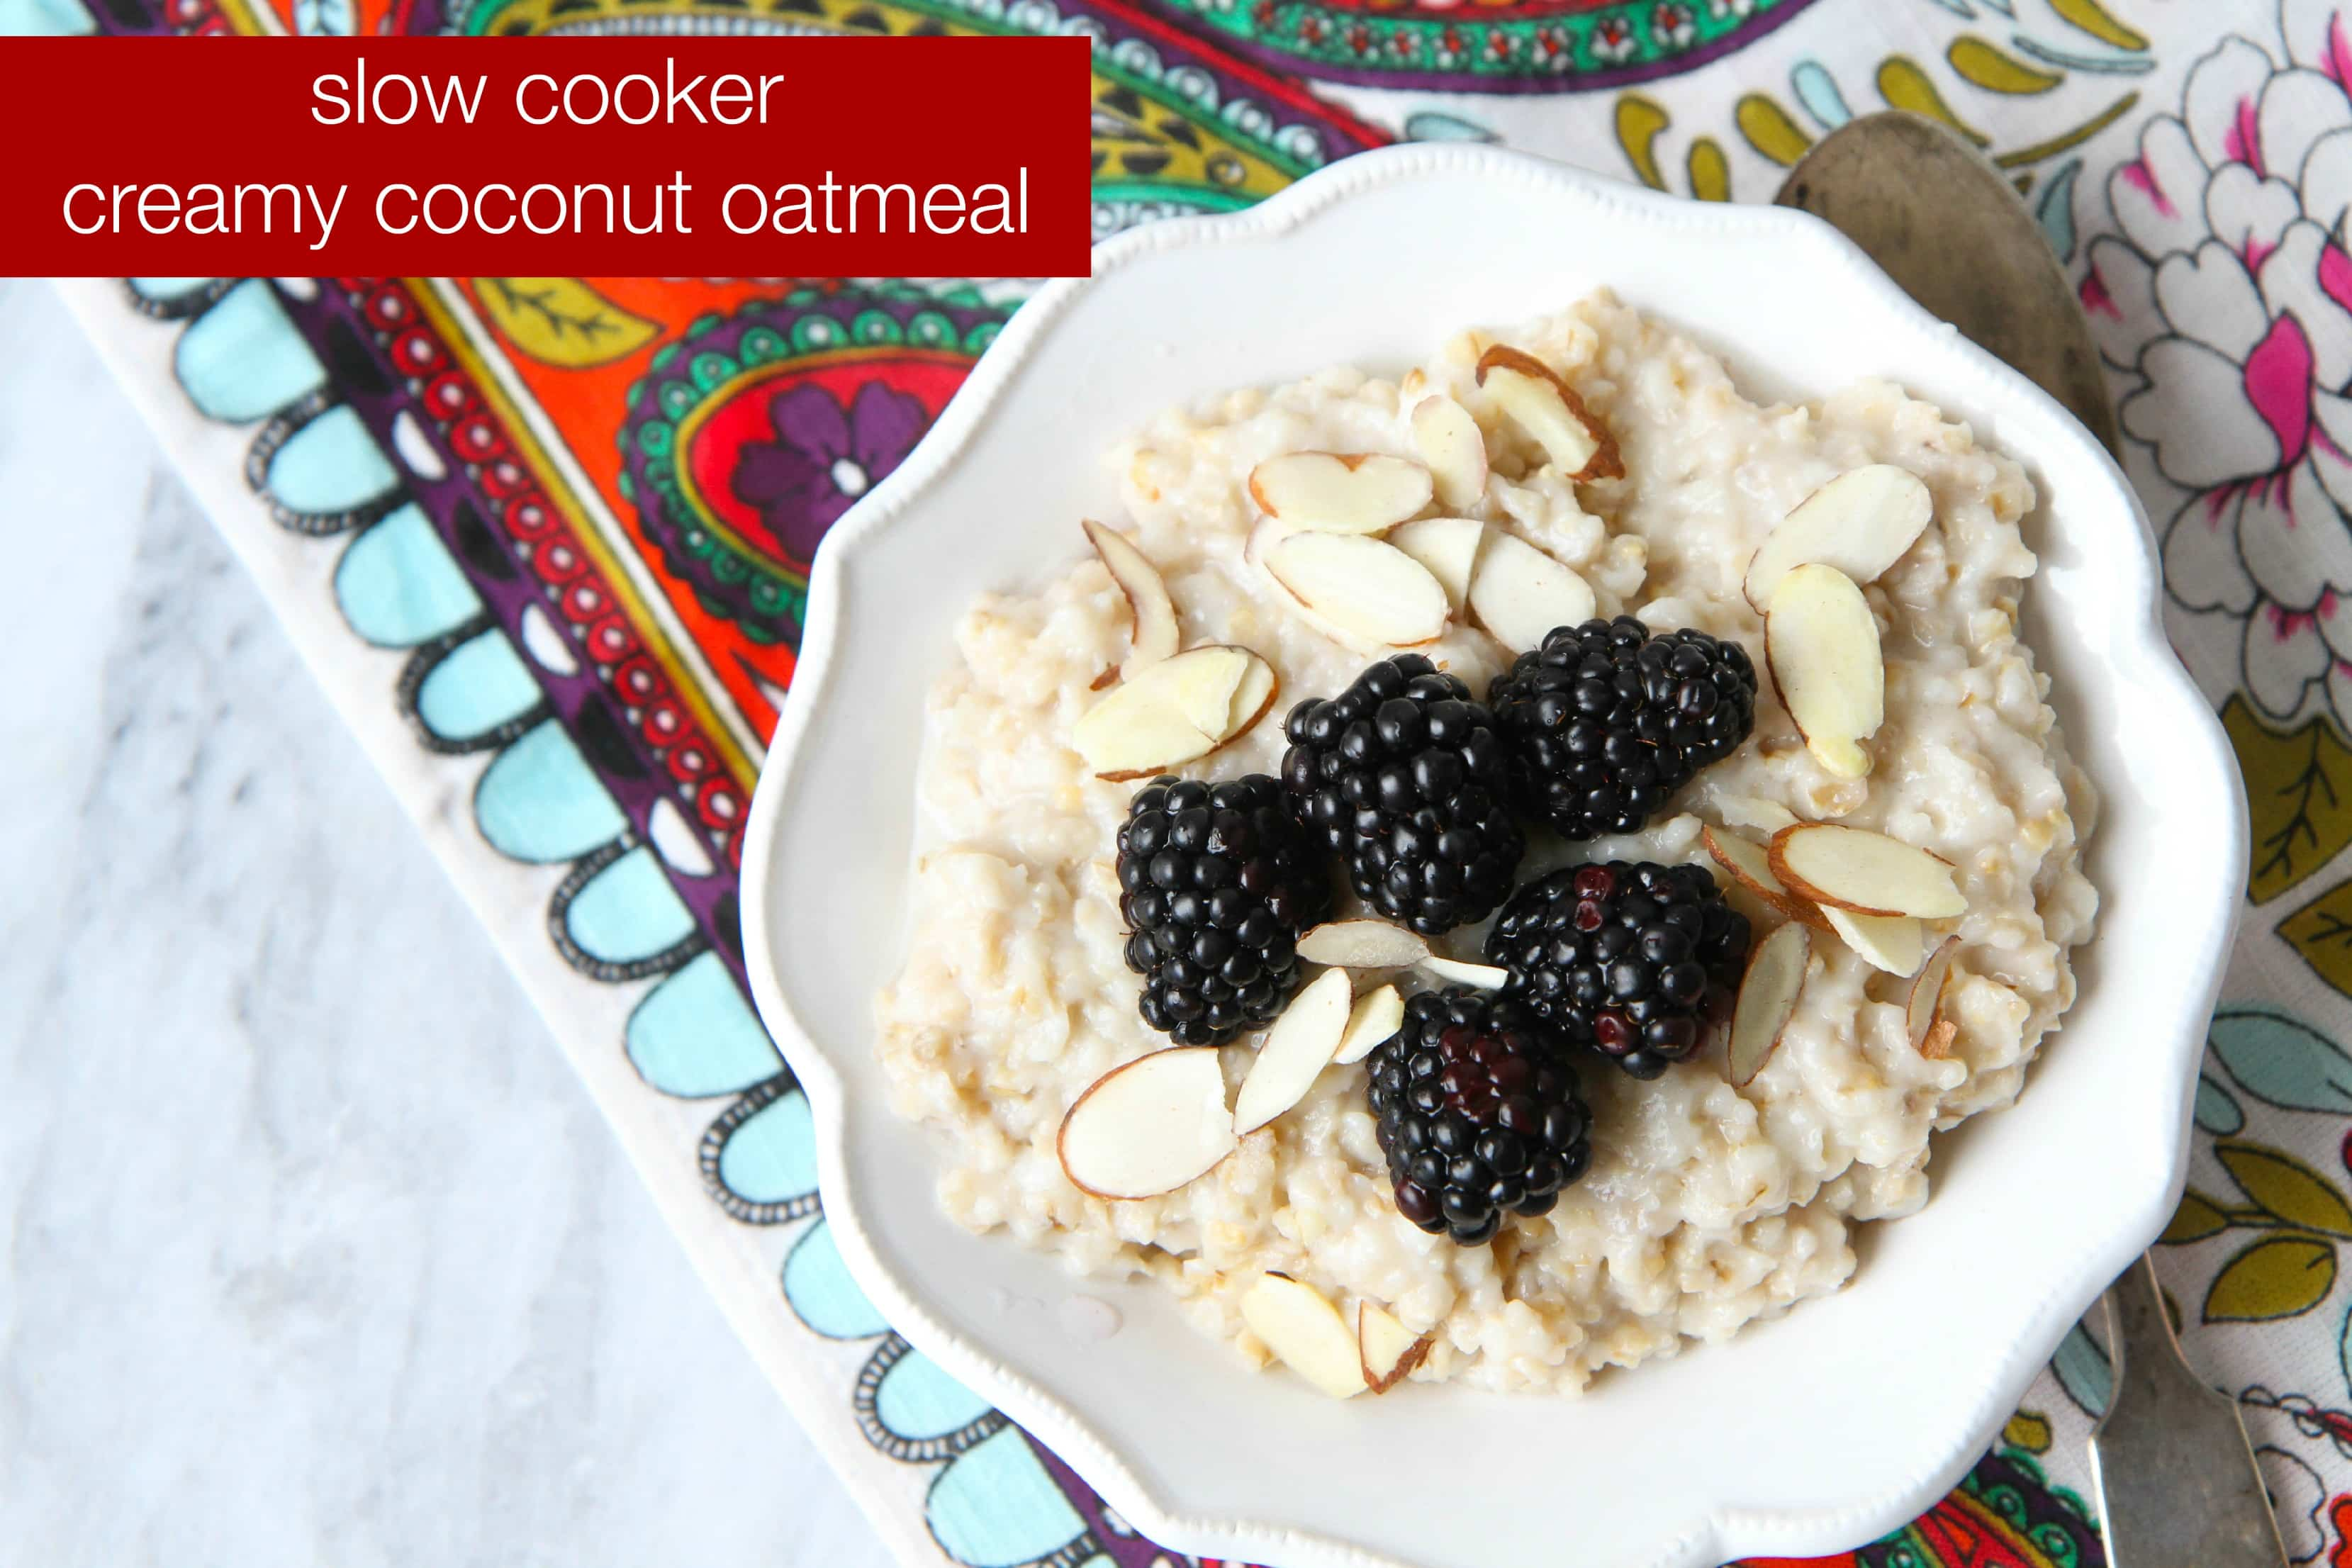 slow-cooker-creamy-coconut-oatmeal